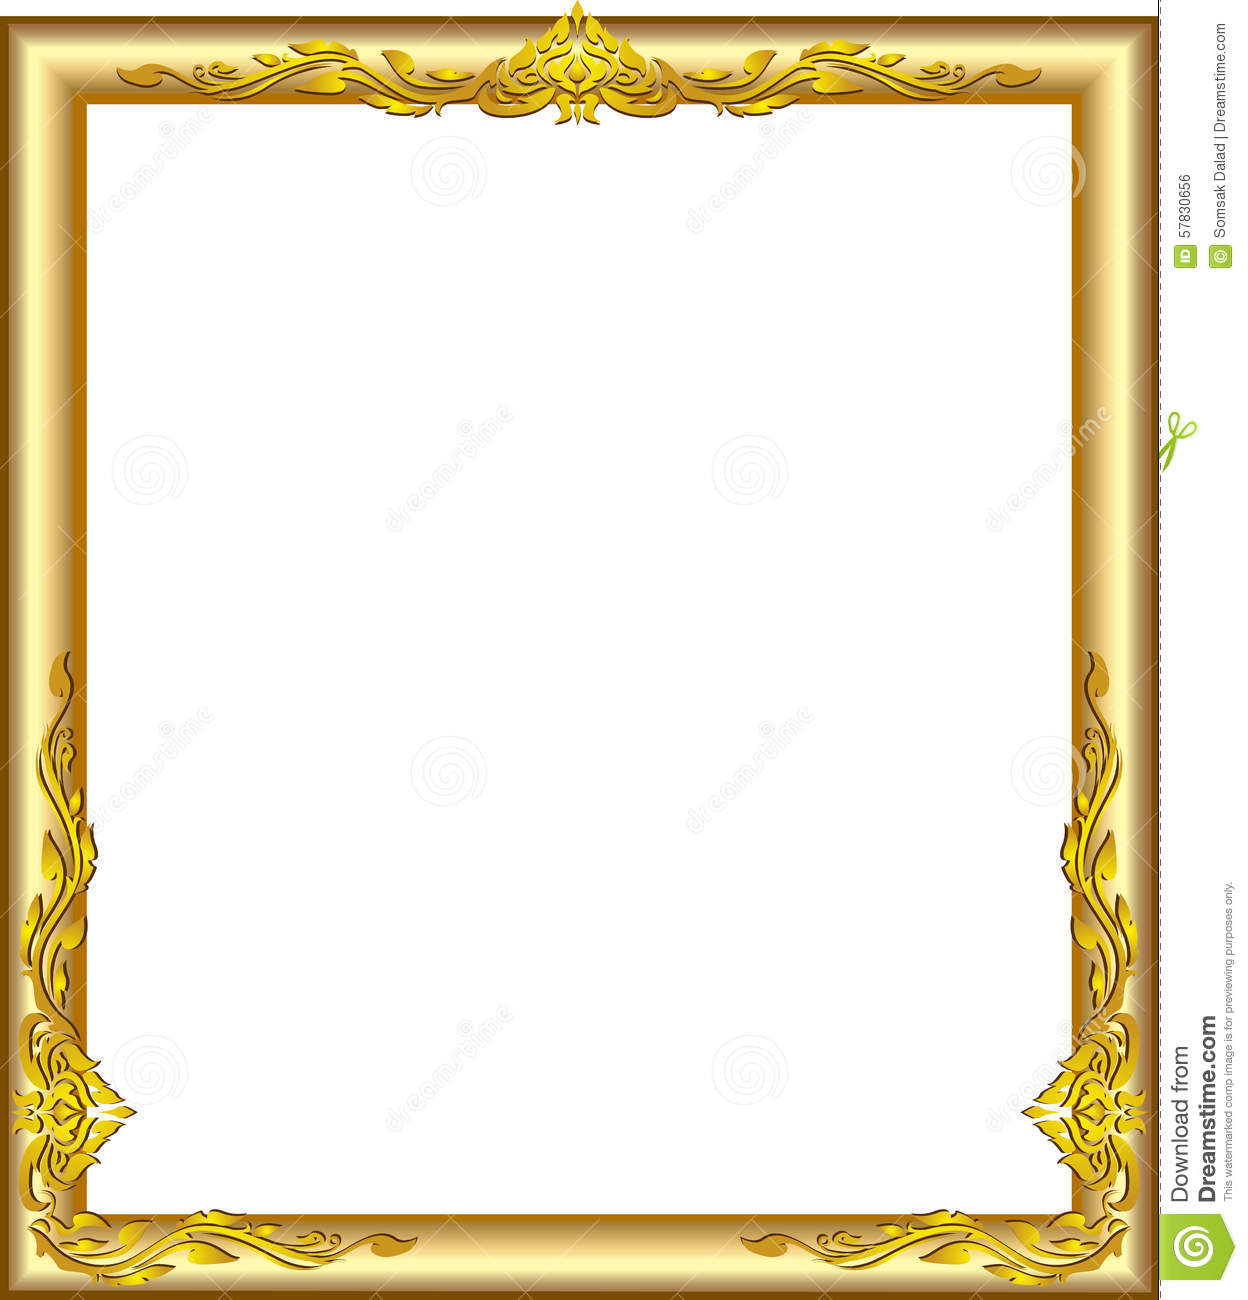 Frame Design Line Art : Gold frame floral stock vector illustration of rich